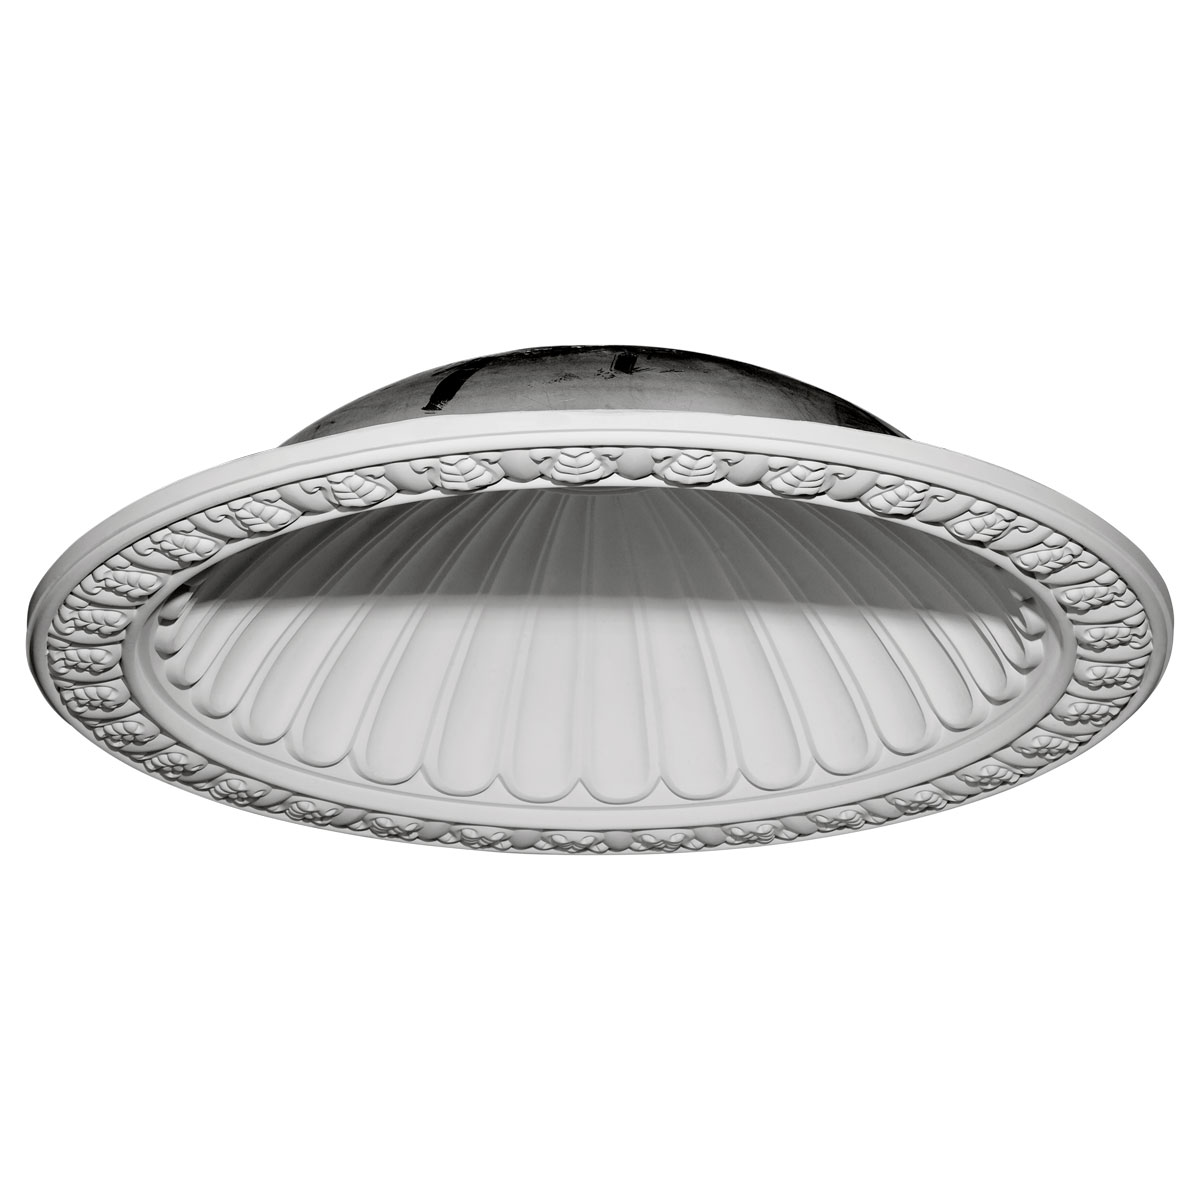 """DOME47CL 47-3/8""""OD x 38-3/8""""ID x 10-3/8""""D Claremont Recessed Mount Ceiling Dome (39""""Diameter x 10-1/2""""D Rough Opening)"""